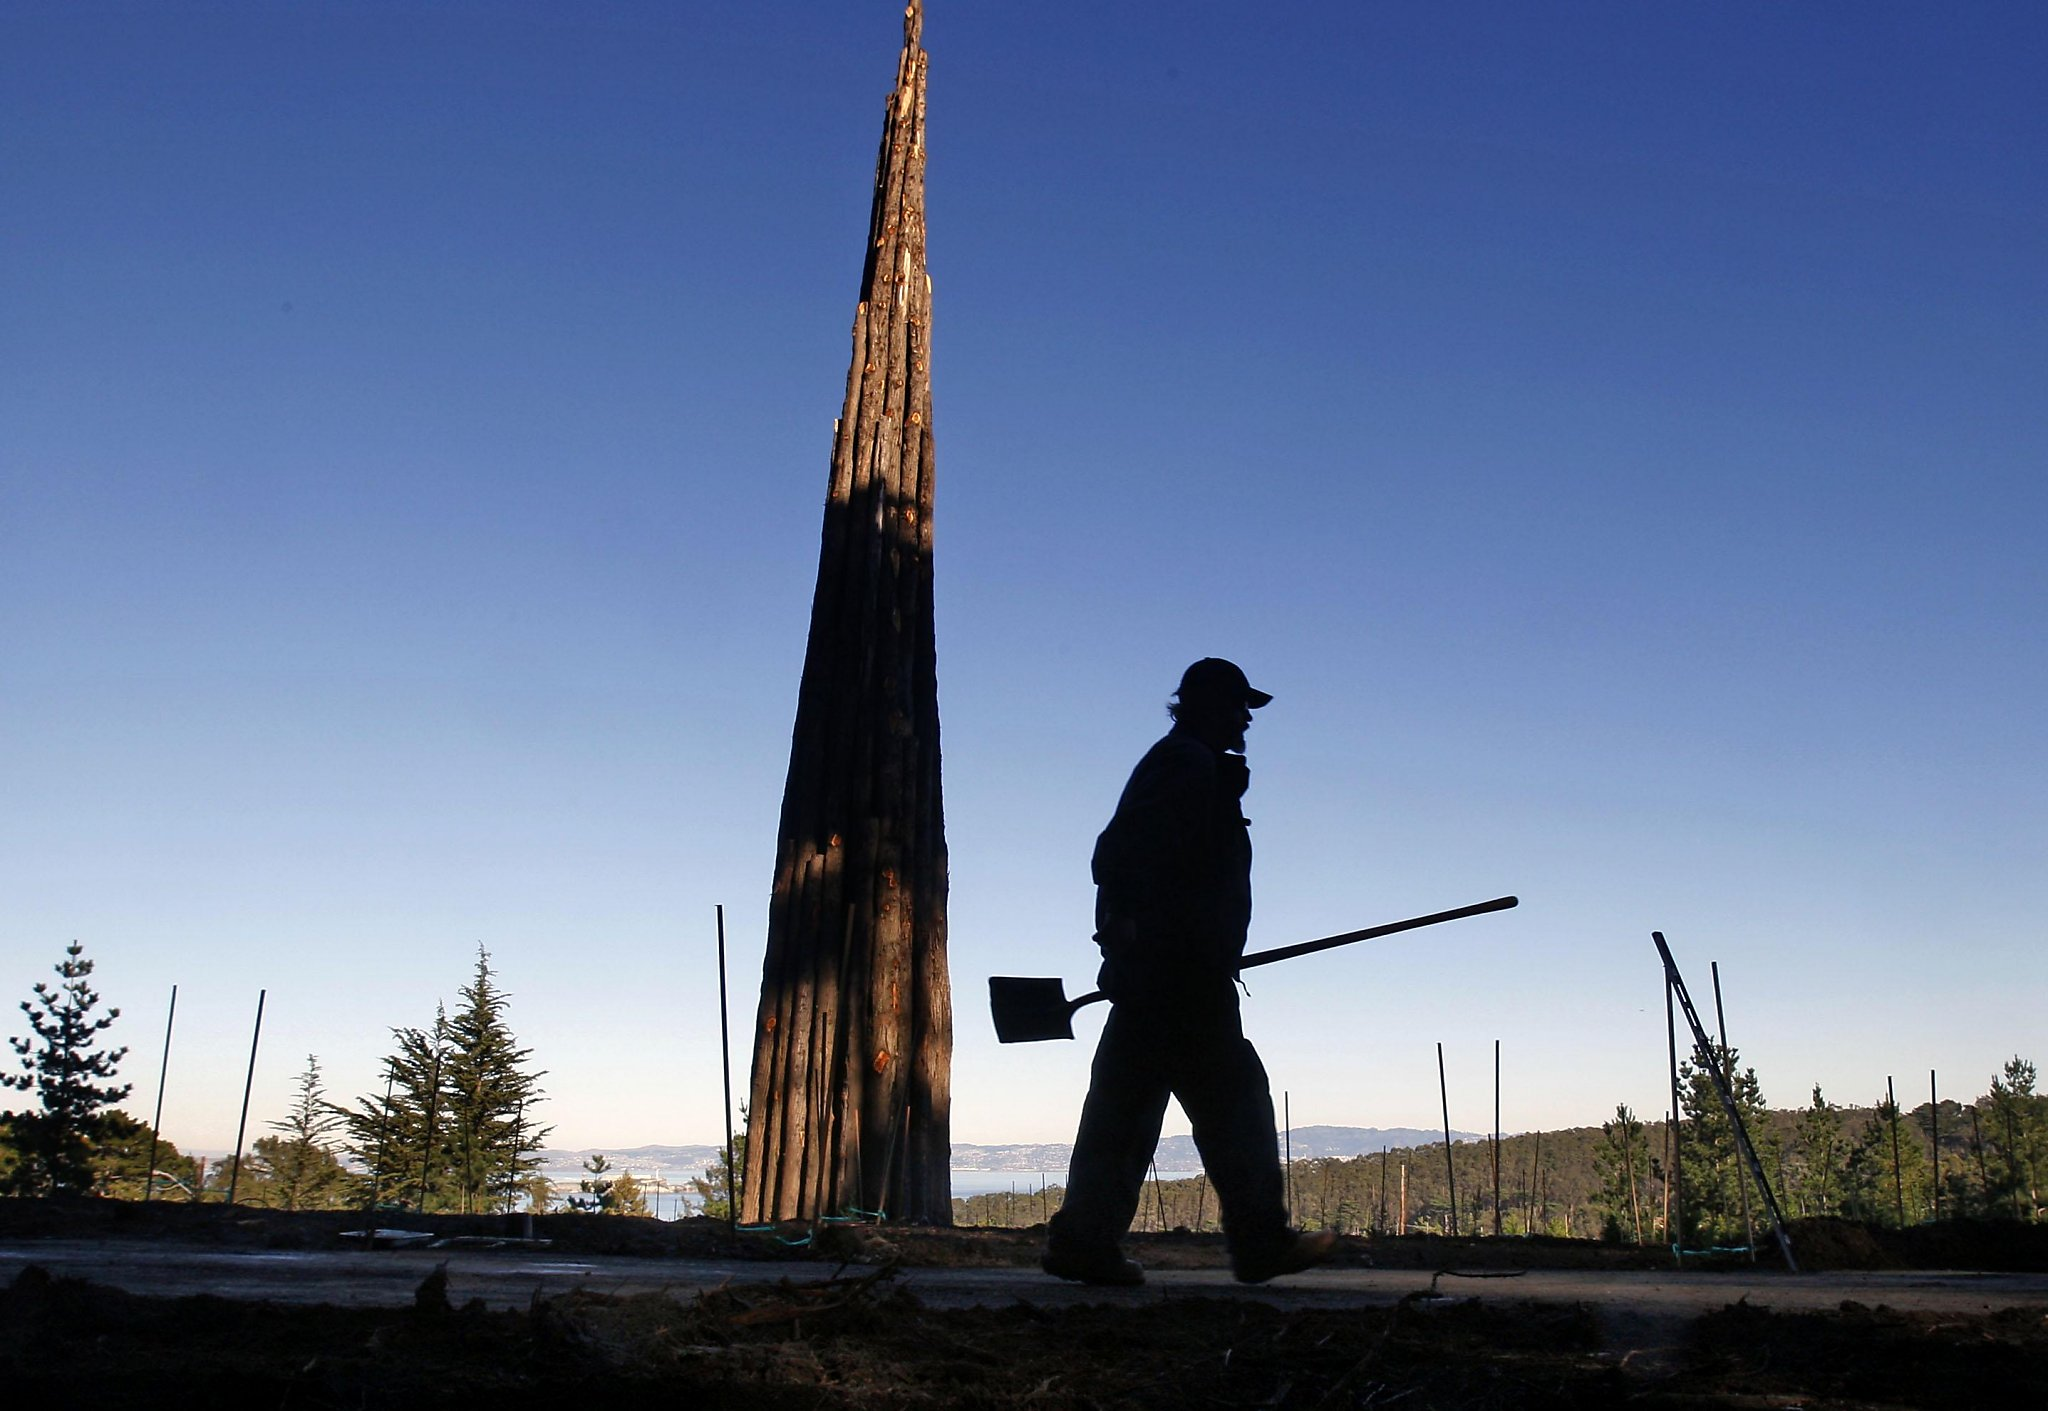 Presidio's 100-foot Goldsworthy sculpture gets a new welcome, burns and all